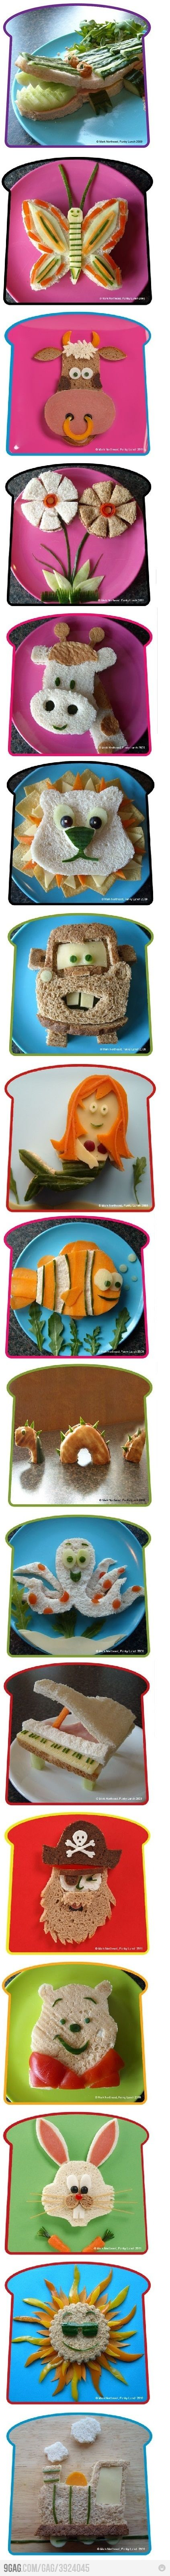 Elijah would LOVE a Mater sandwich!: Fun Food, School Lunch, Kiddie Food, Fun Sandwich, Kids Lunch, Kids Food